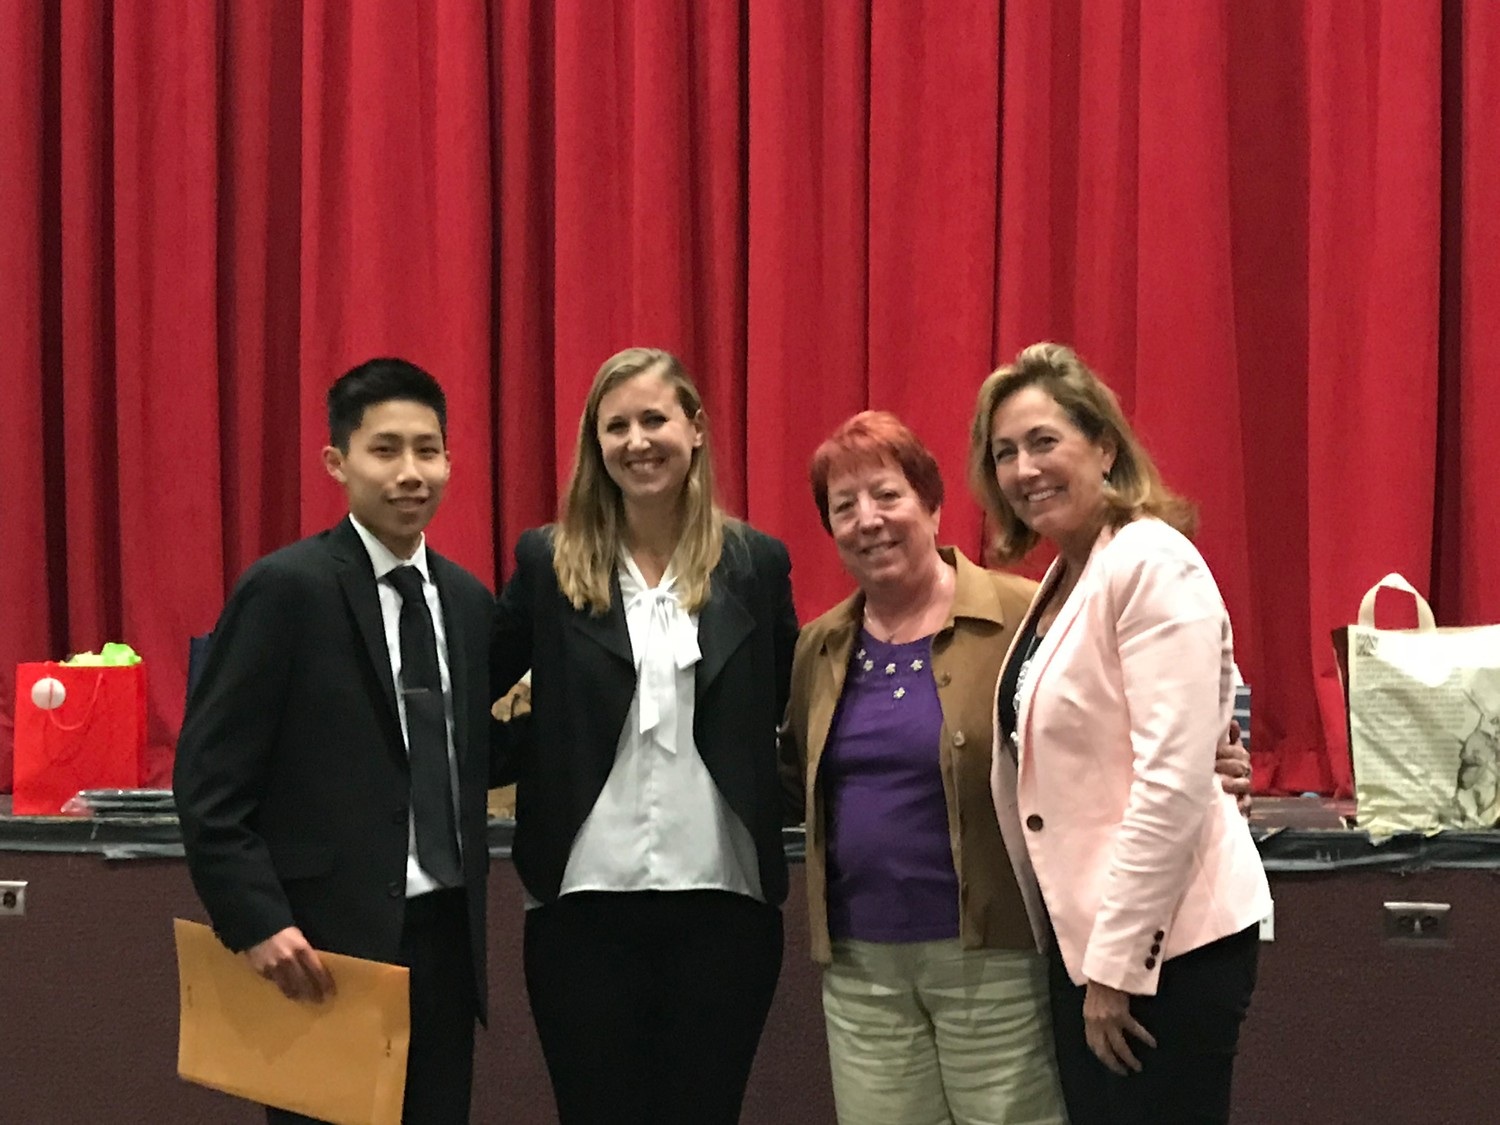 South Side High School student Joseph McNair, left, was granted the Ken Pribil Jr. Foundation's 13th annual scholarship by Ken's sister, Jacqueline Morreale, to his left, Kathleen La Vache, Ken's aunt, and Lorette Pribil, Ken's mother.